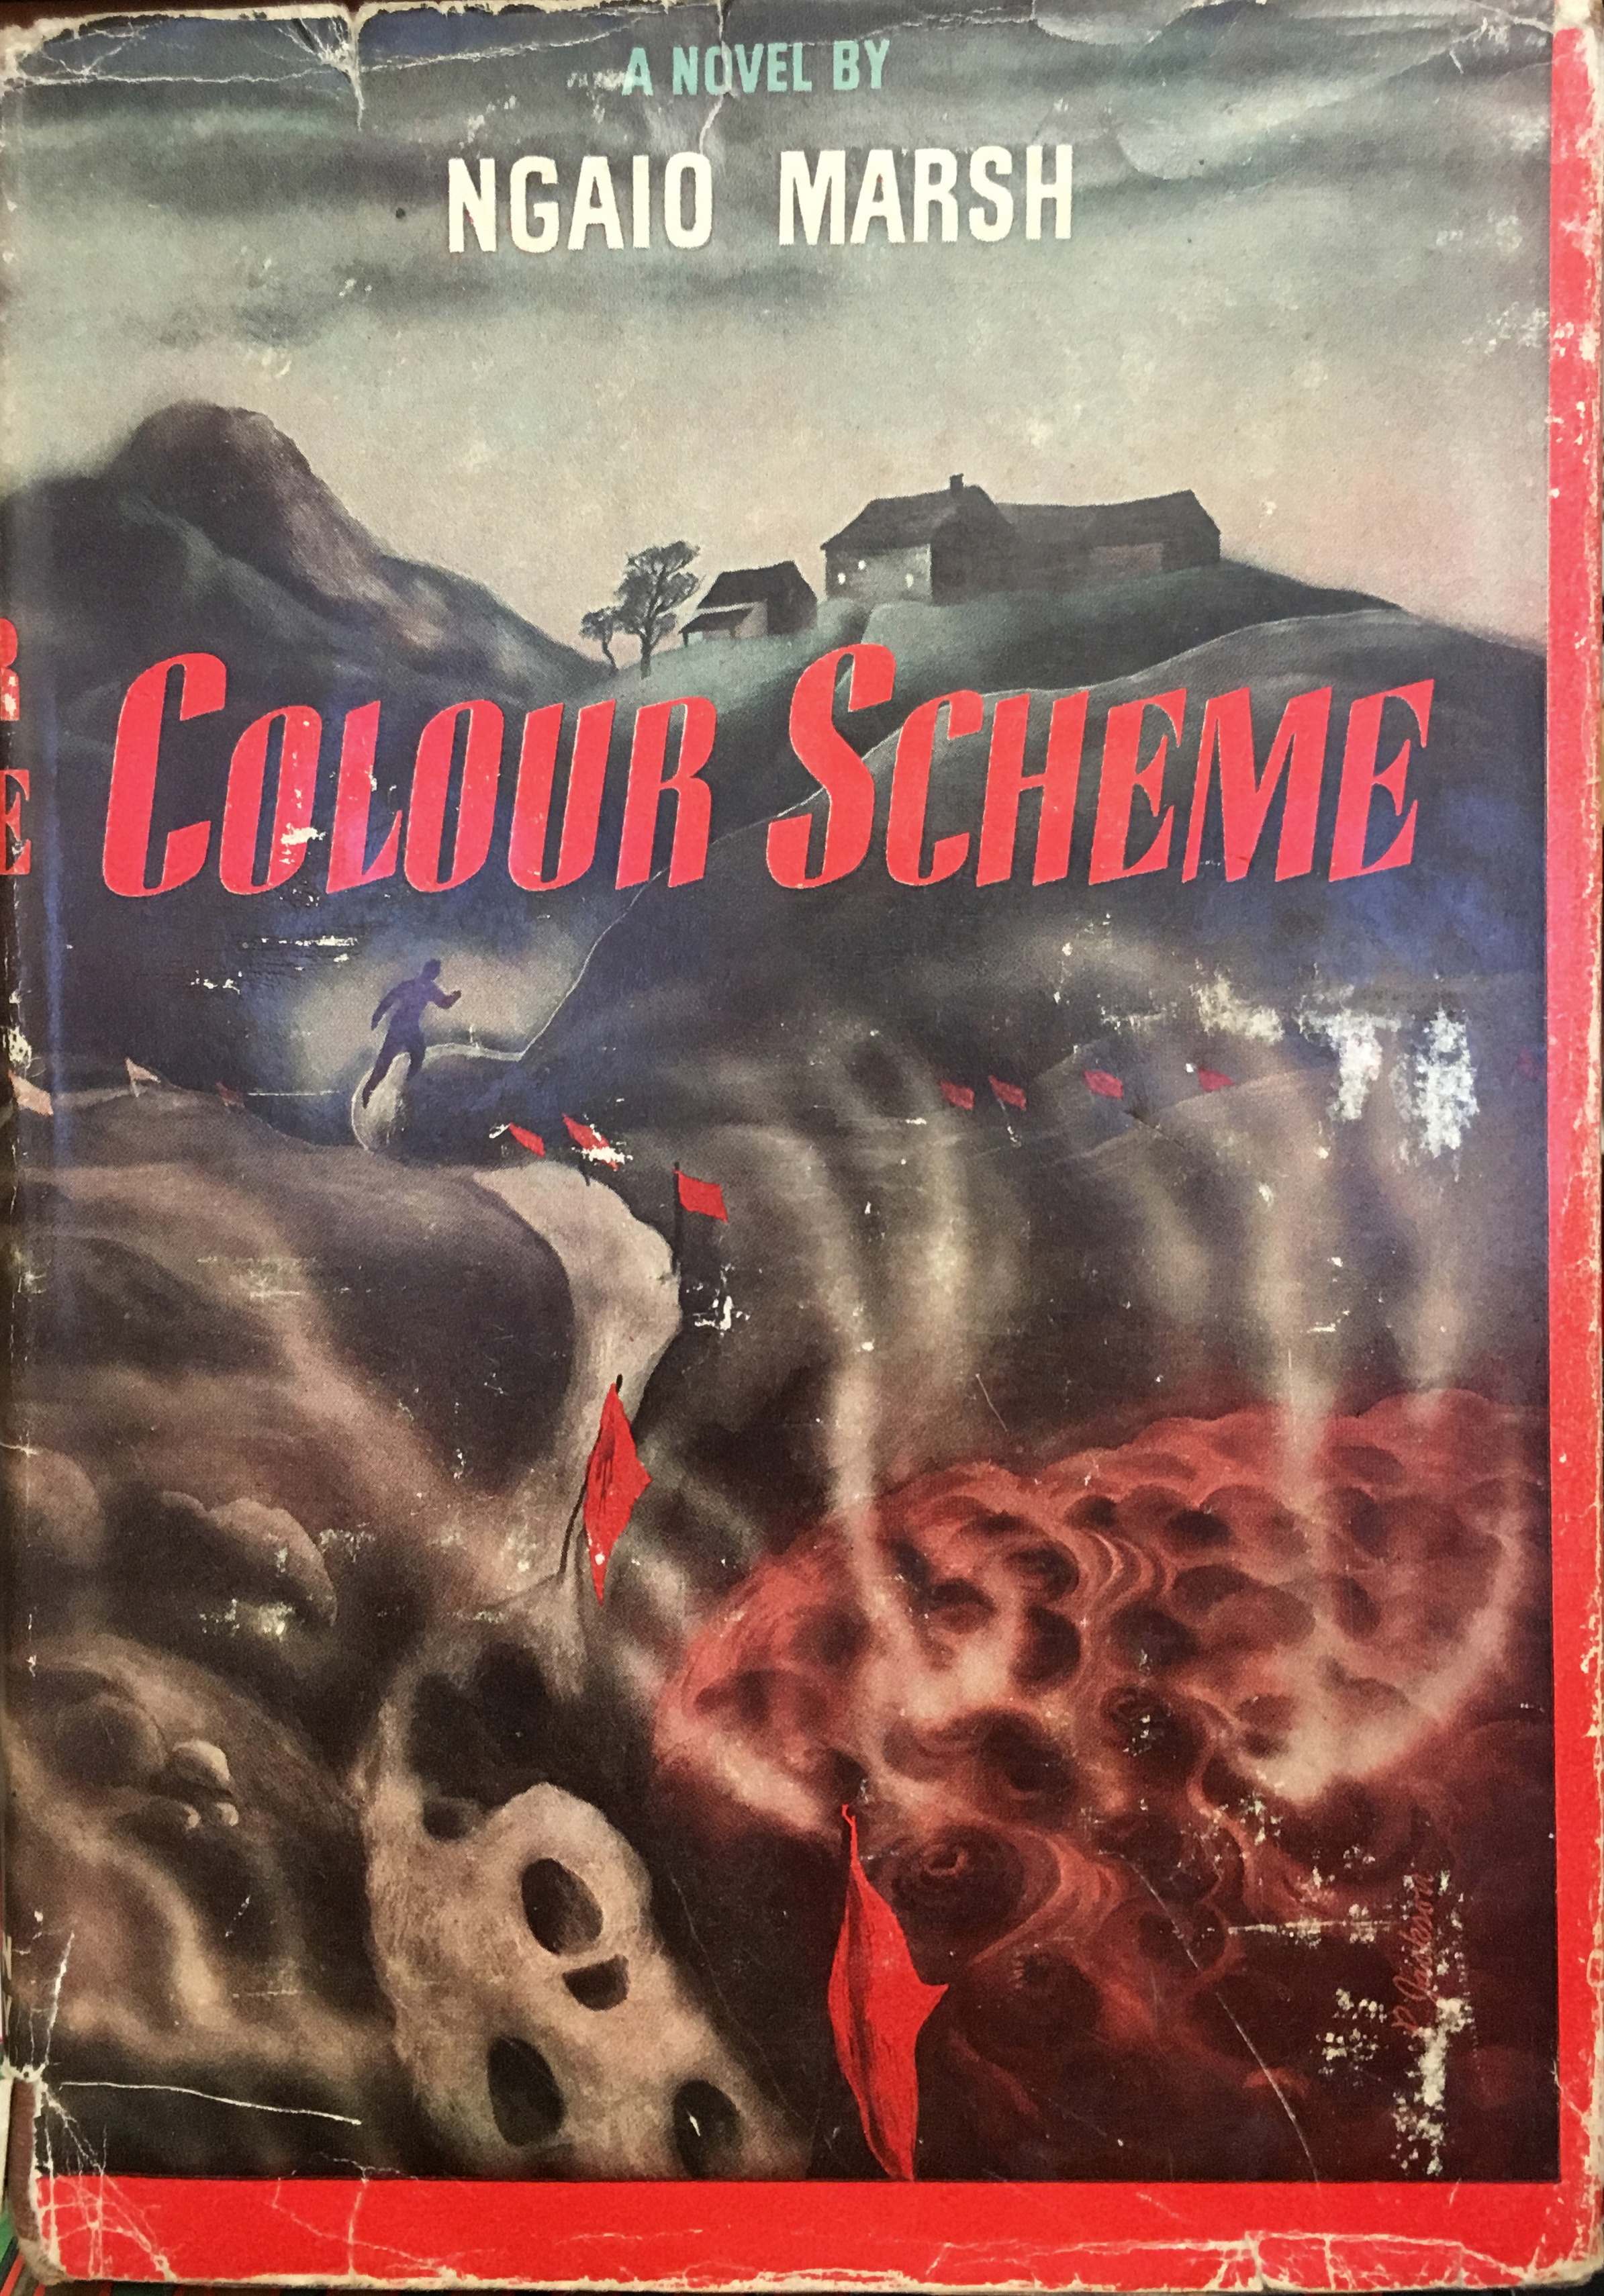 1945 printing, 'colour scheme' by ngaio marsh